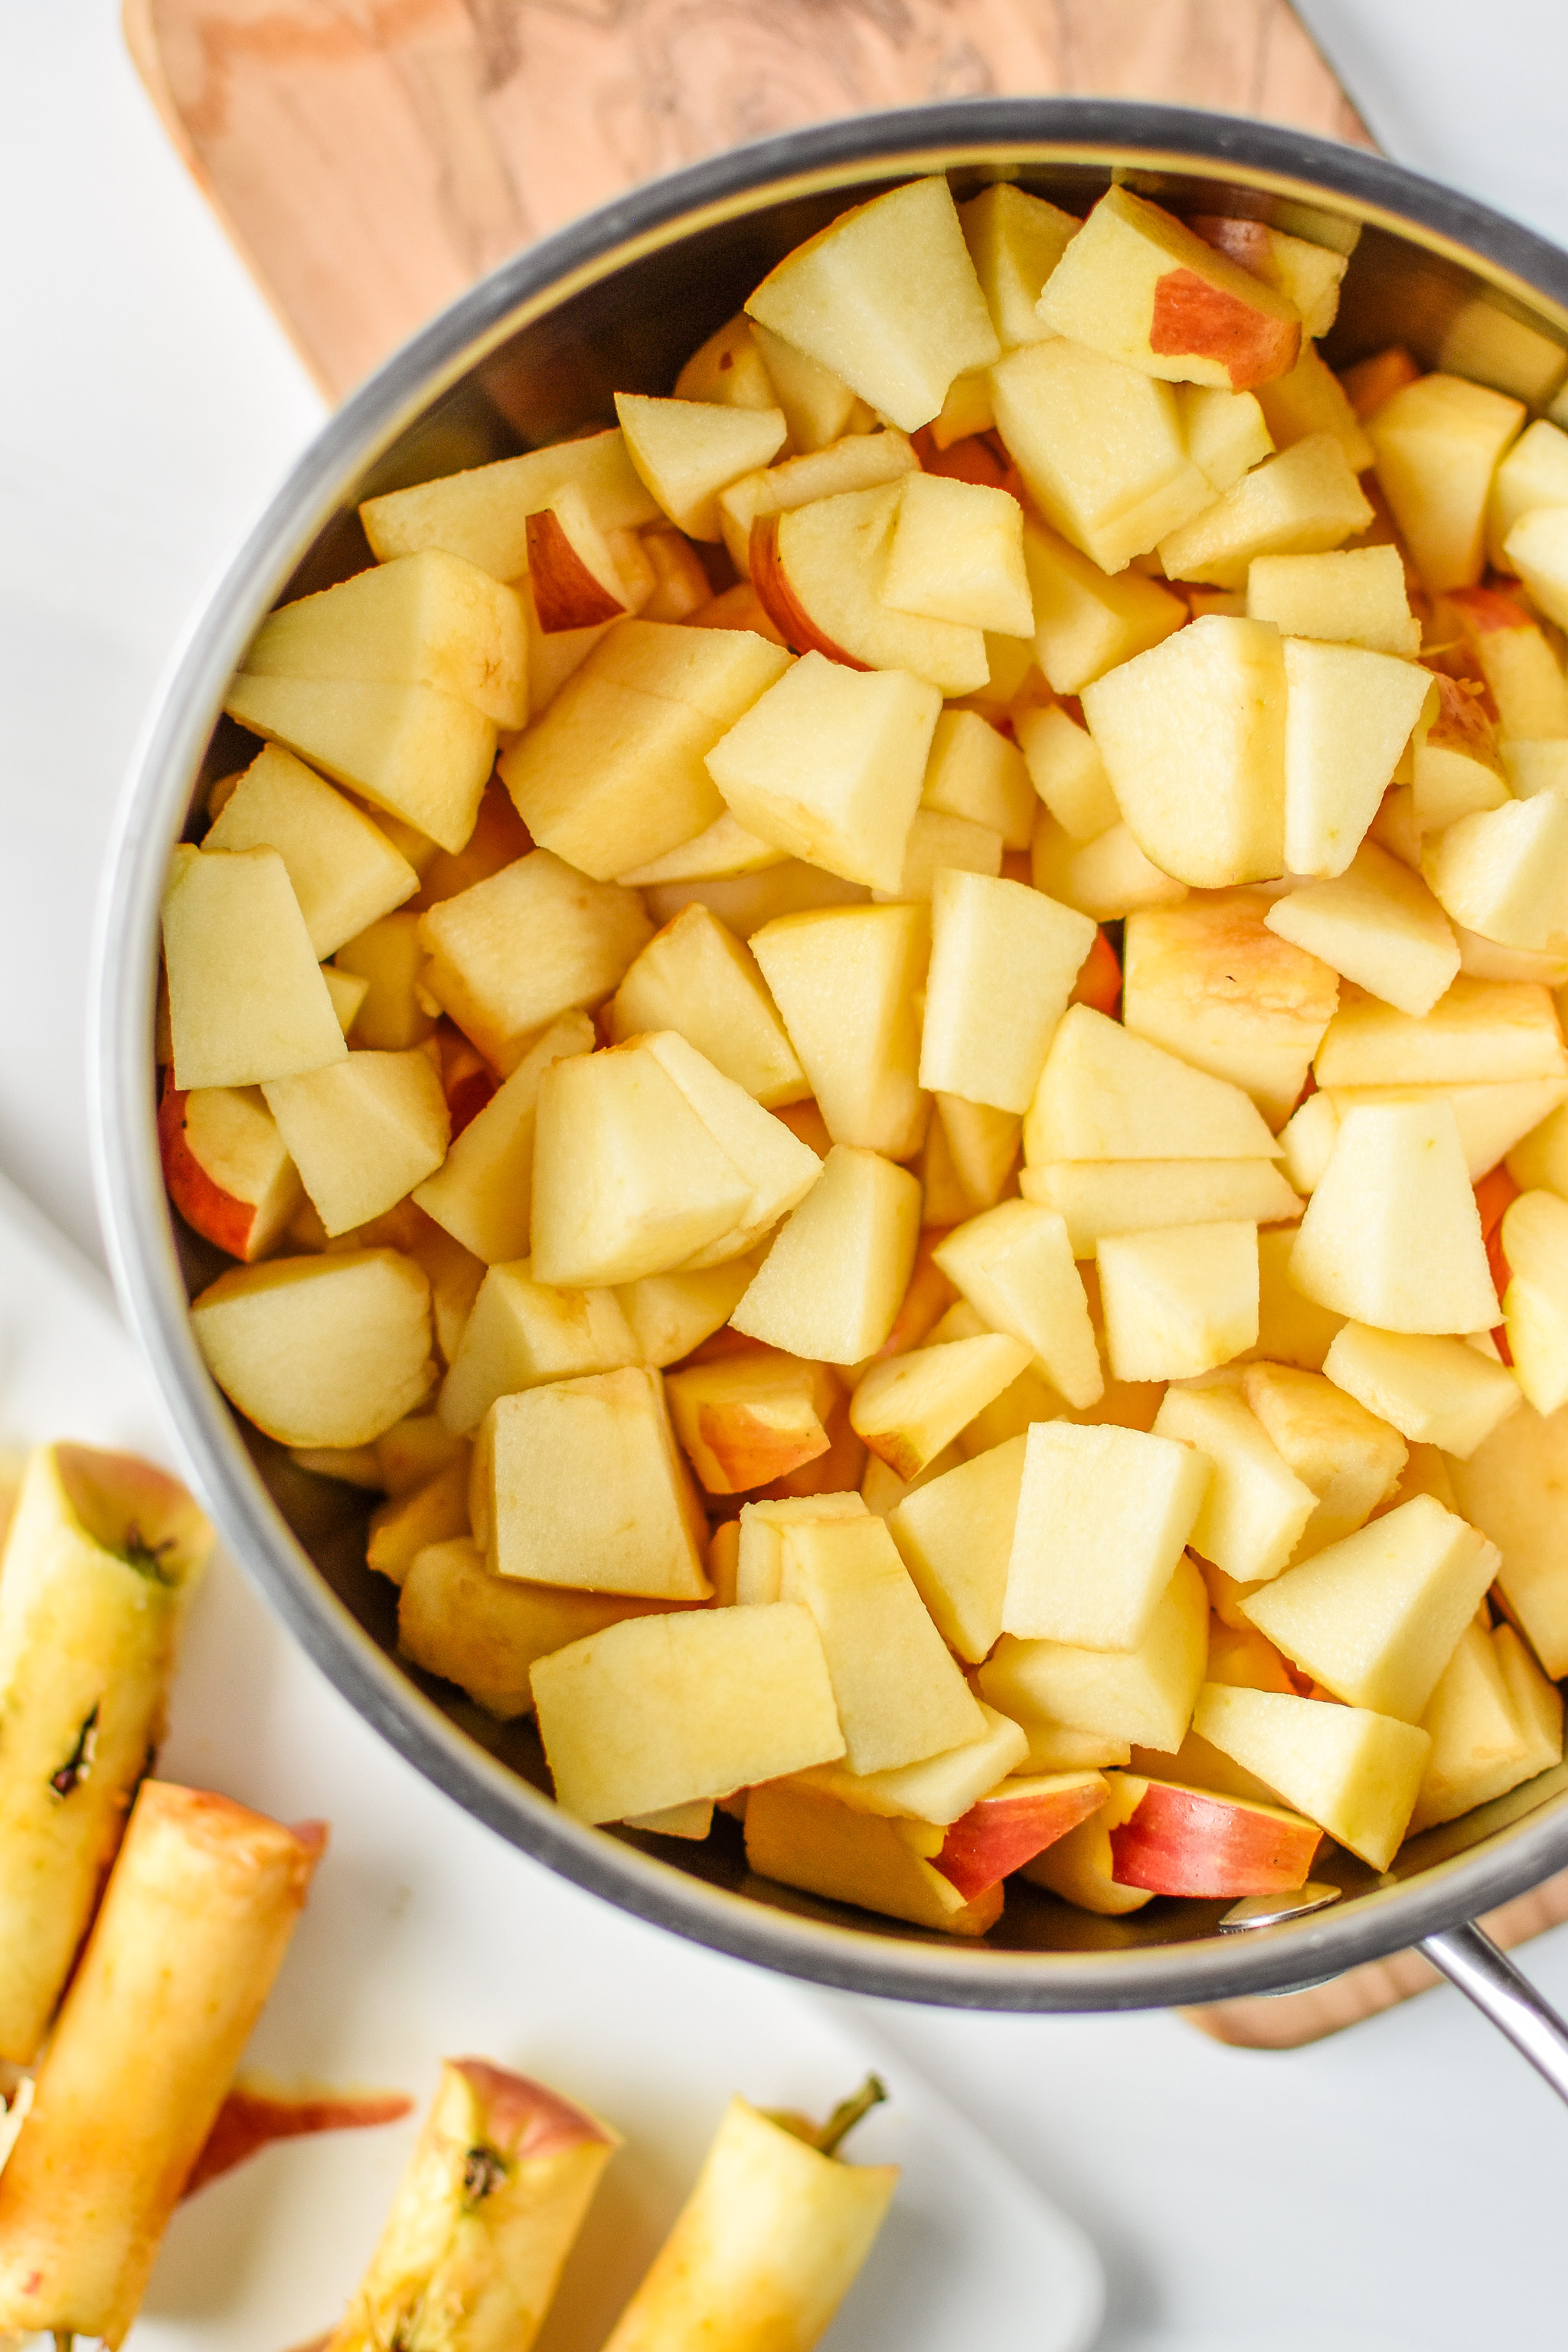 Apples cut and peeled in the pan ready to be cooked down into applesauce. Store bought vs Homemade: Which is Cheaper?